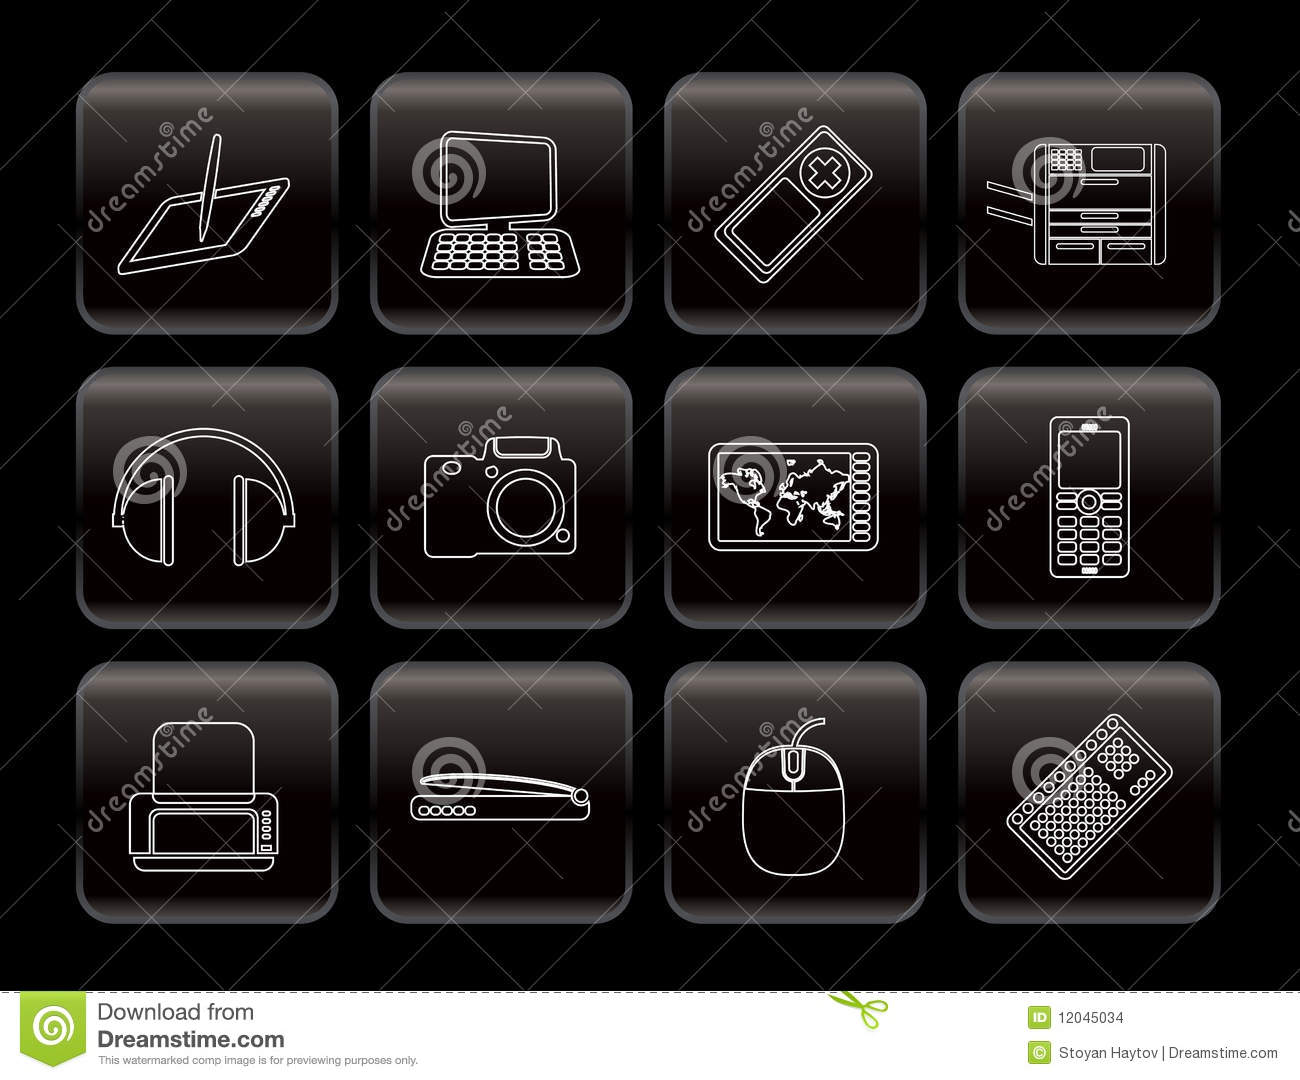 Line hi tech technical equipment icons icon set 3